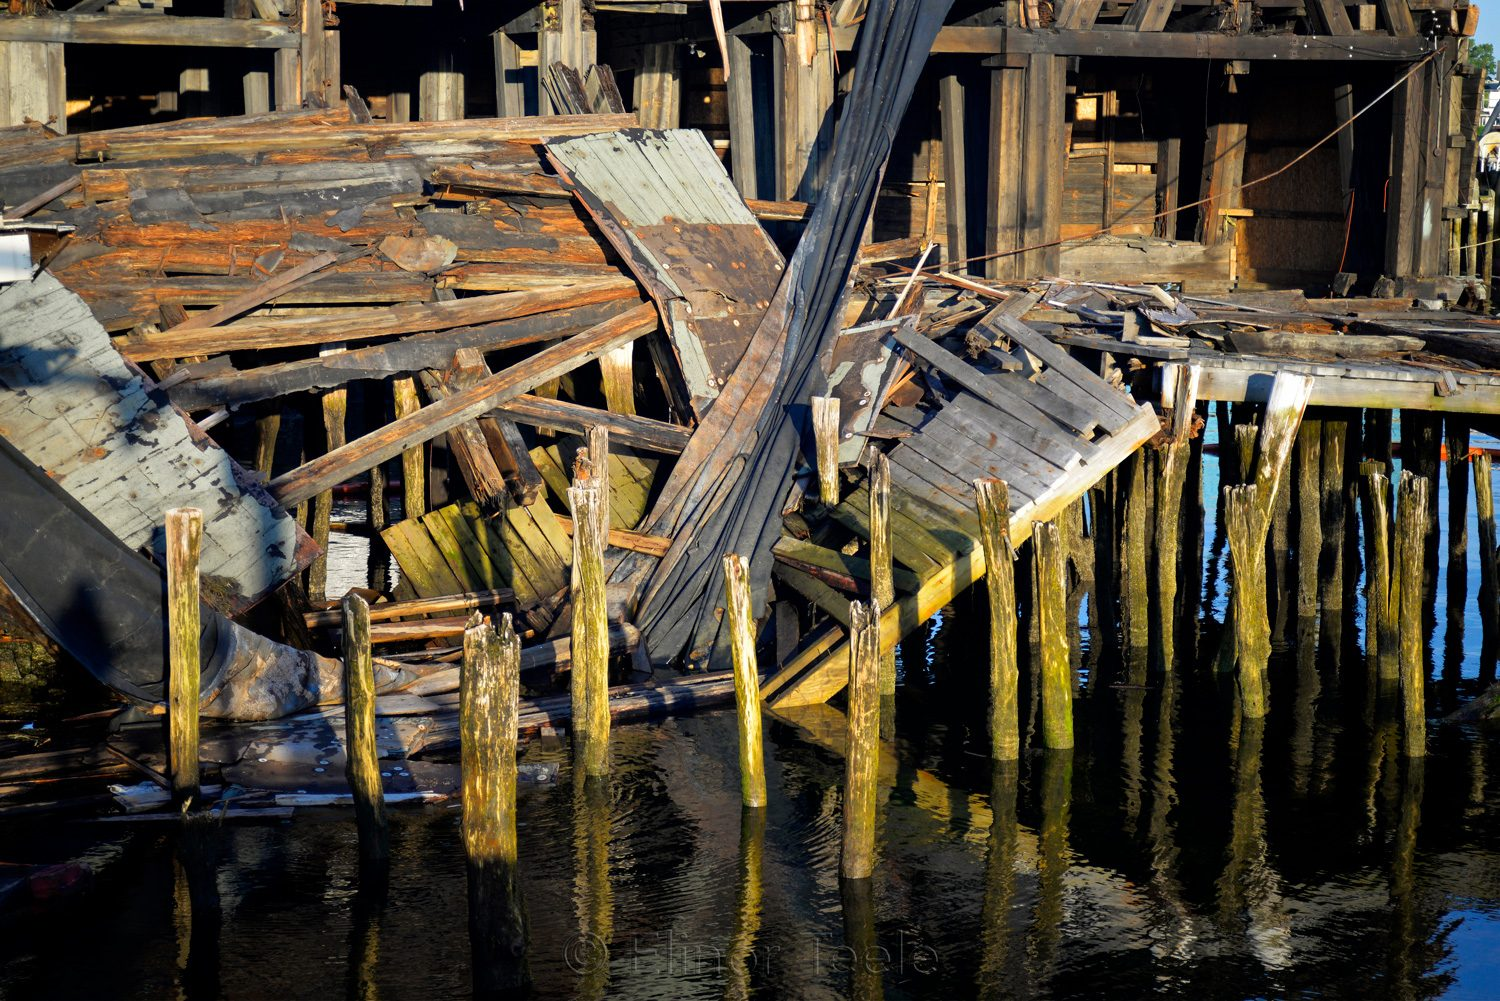 Gloucester Waterfront - Collapsed Warehouse 4